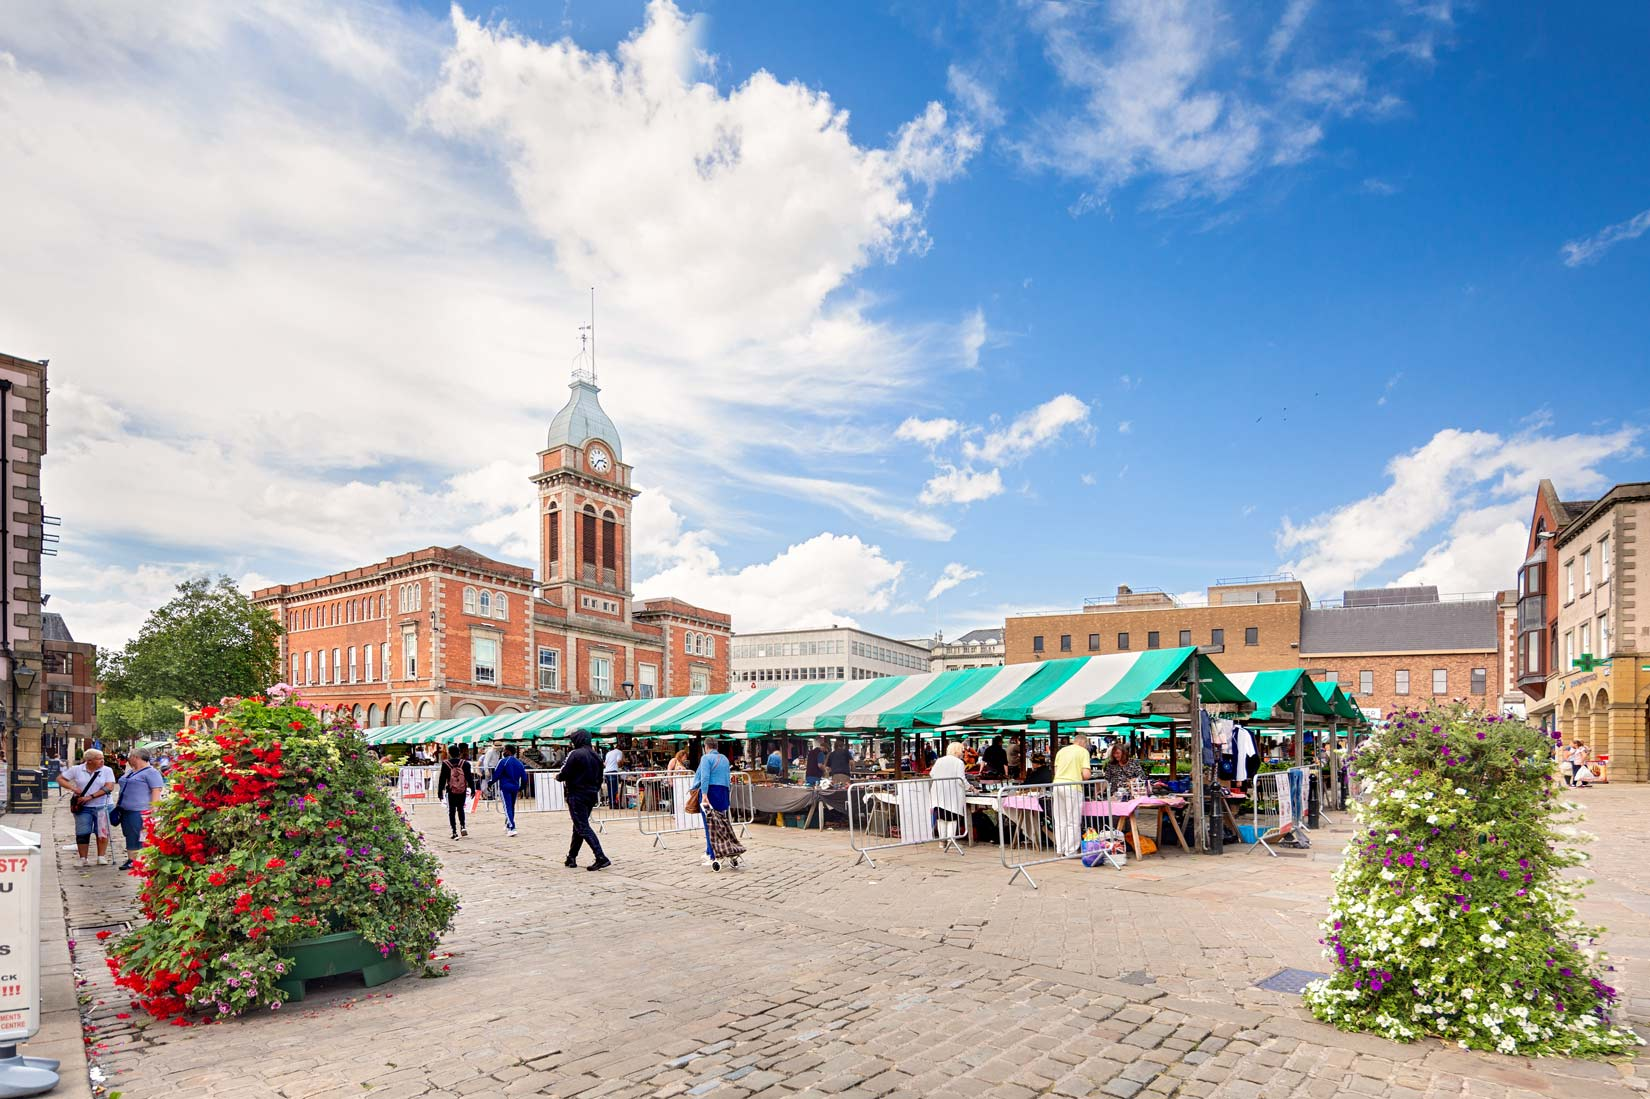 A sunny Chesterfield market with market hall in th background